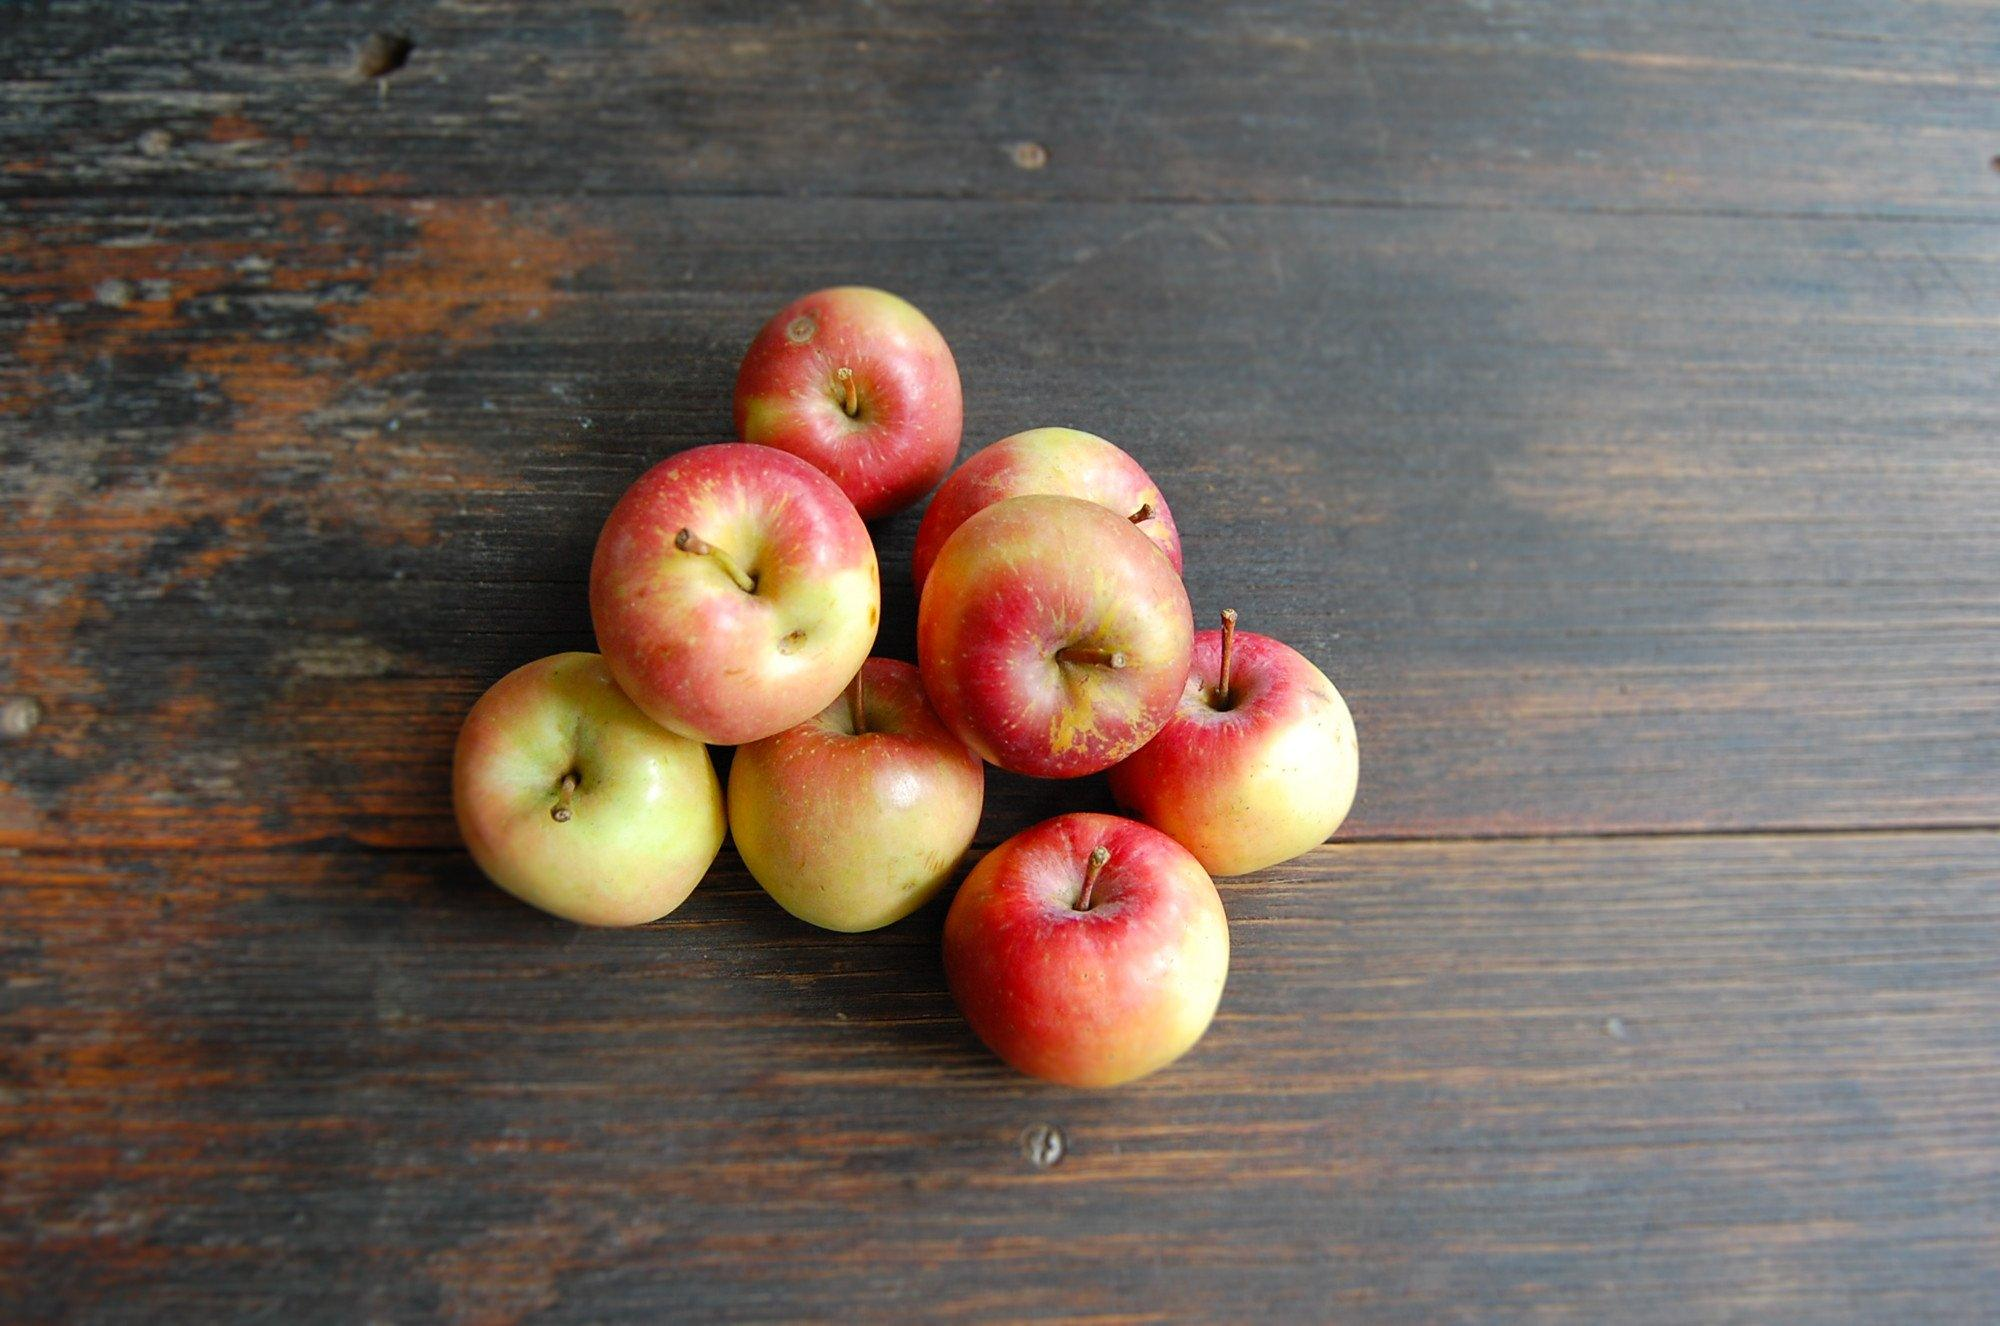 Apple, Fuji (biodynamic)